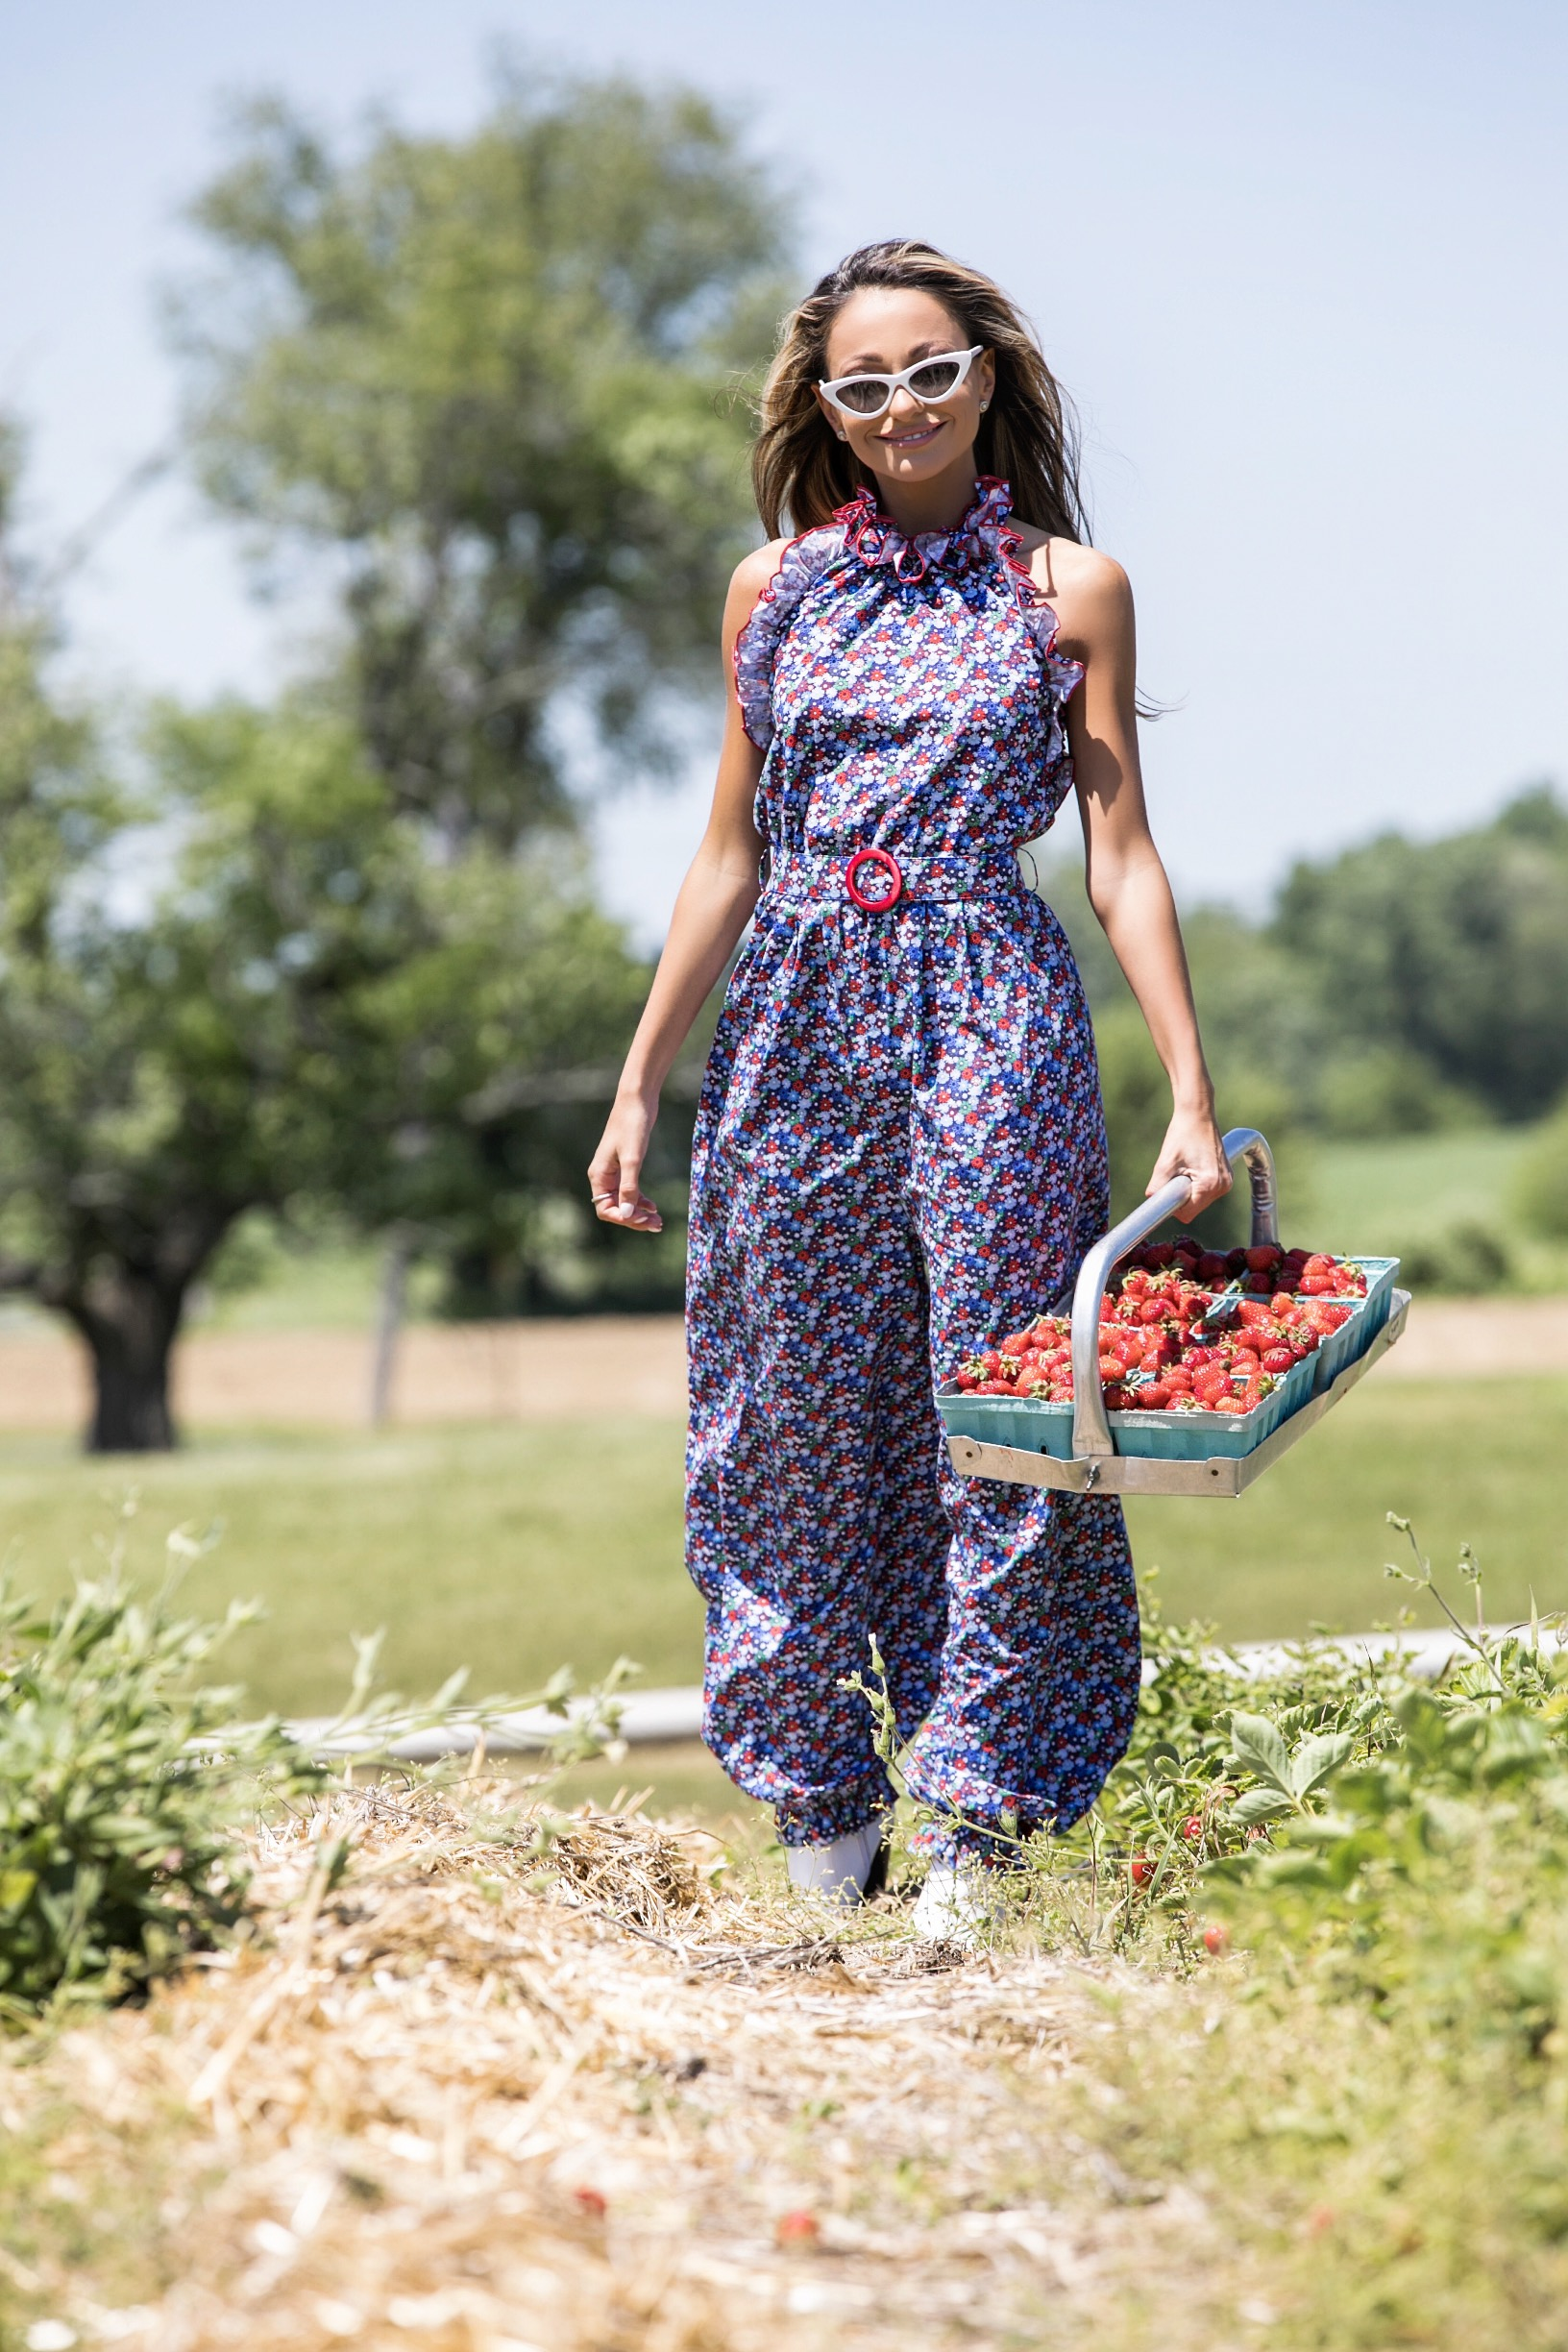 Lauren Recchia seen in a Gul Hurgel floral and halter jumpsuit while picking strawberries